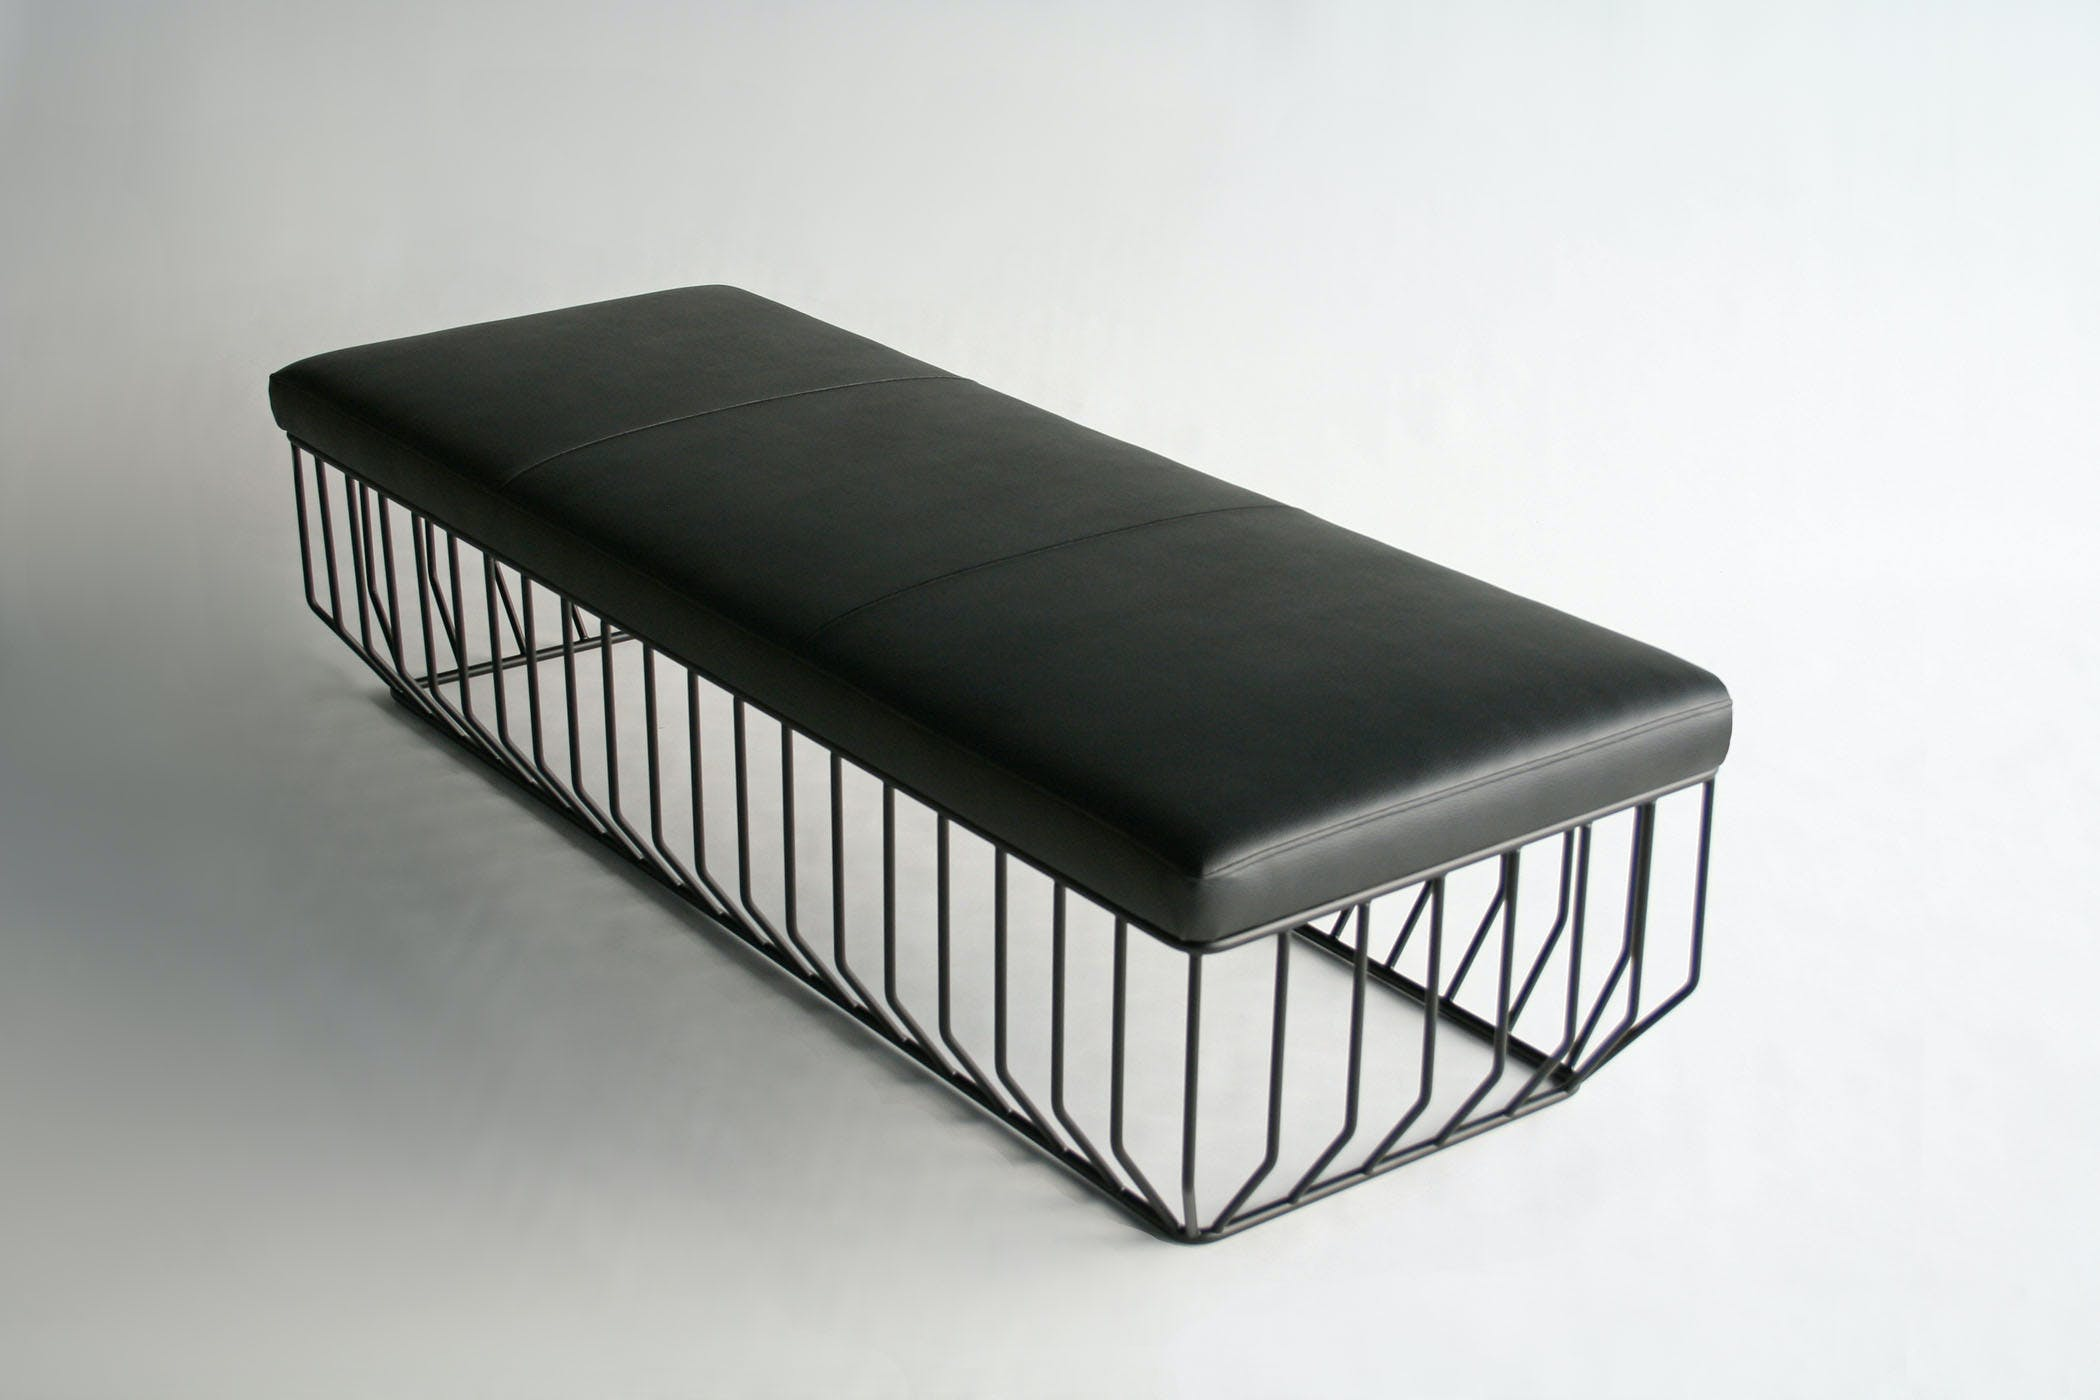 Wired Bench Flat Black Top 34